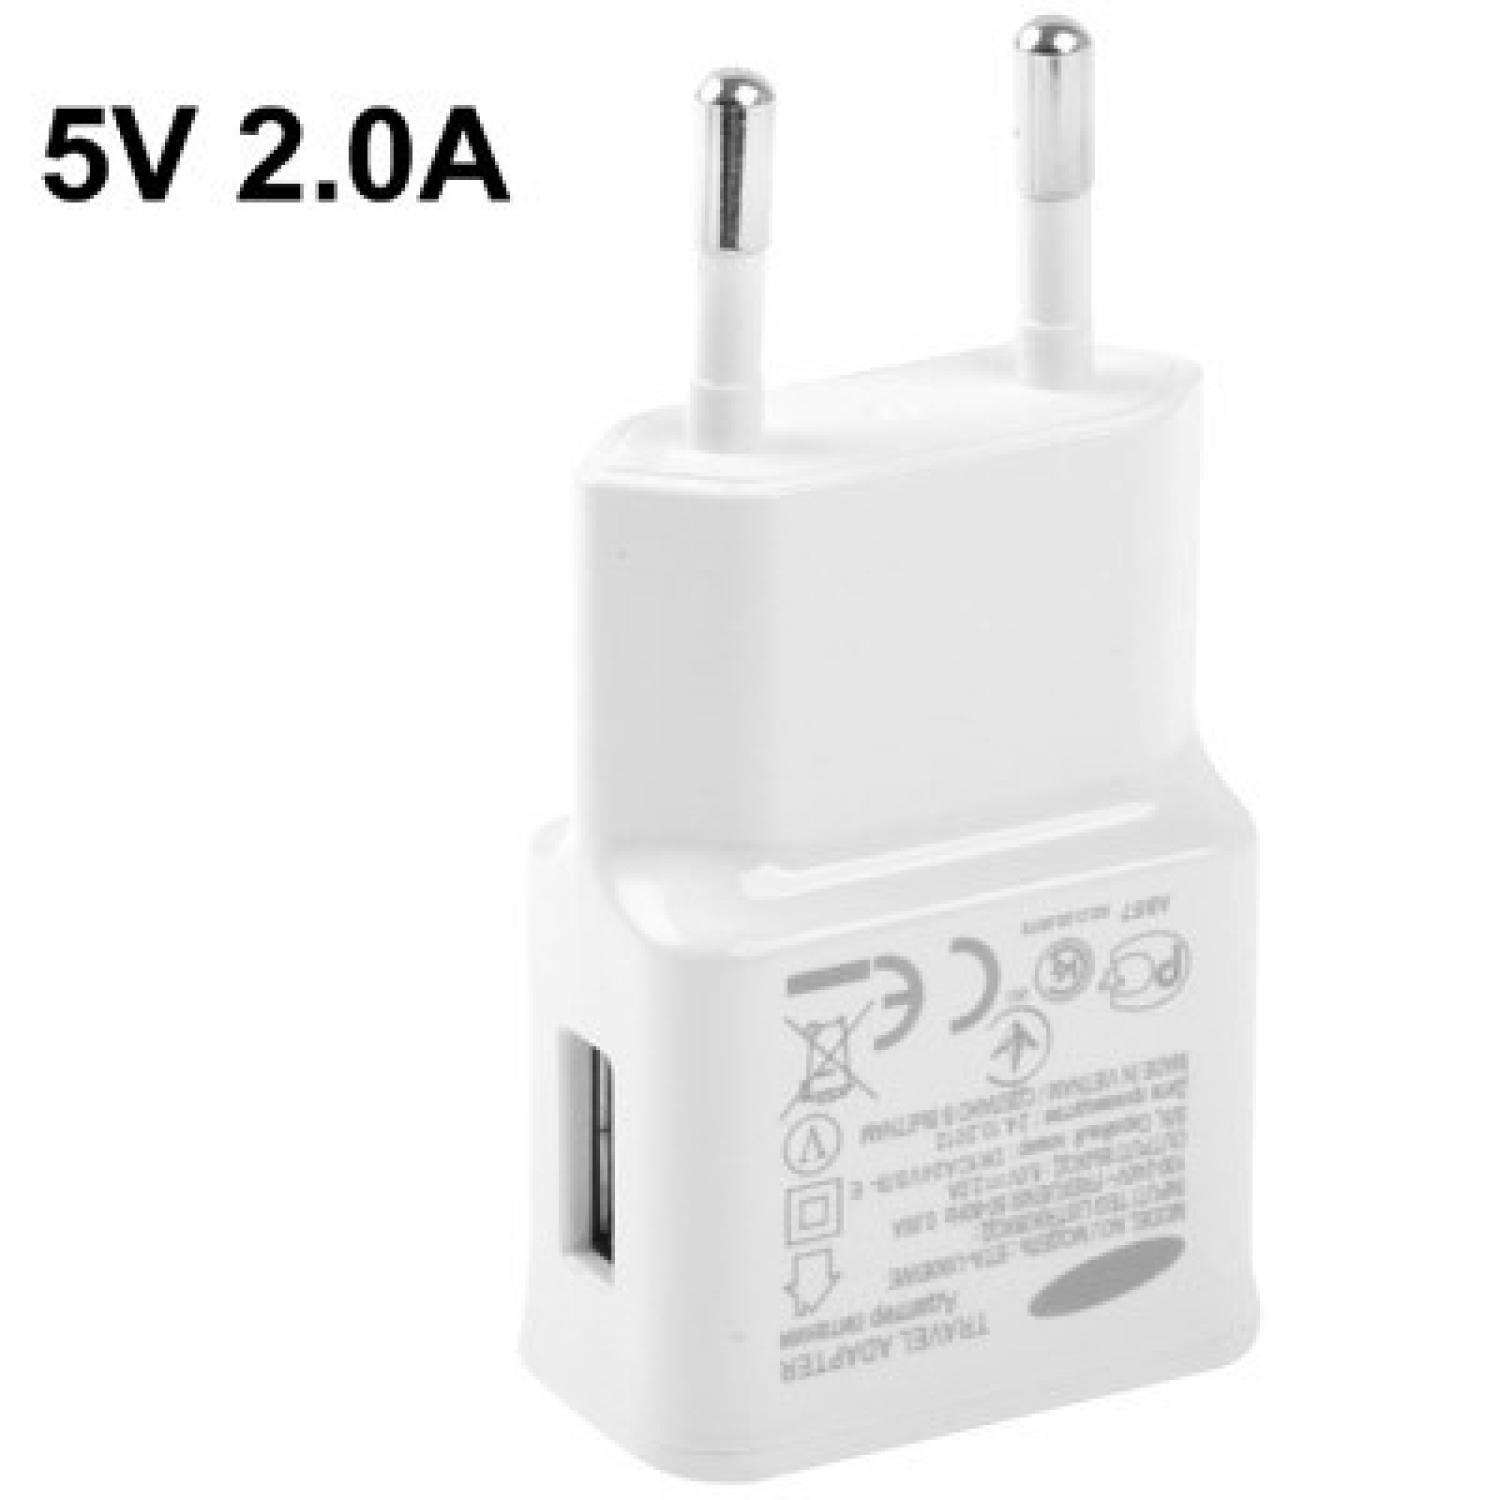 Best Seller!!! Travel Adapter Charger 5V 2.0A for Samsung Galaxy Note II HP Termurah